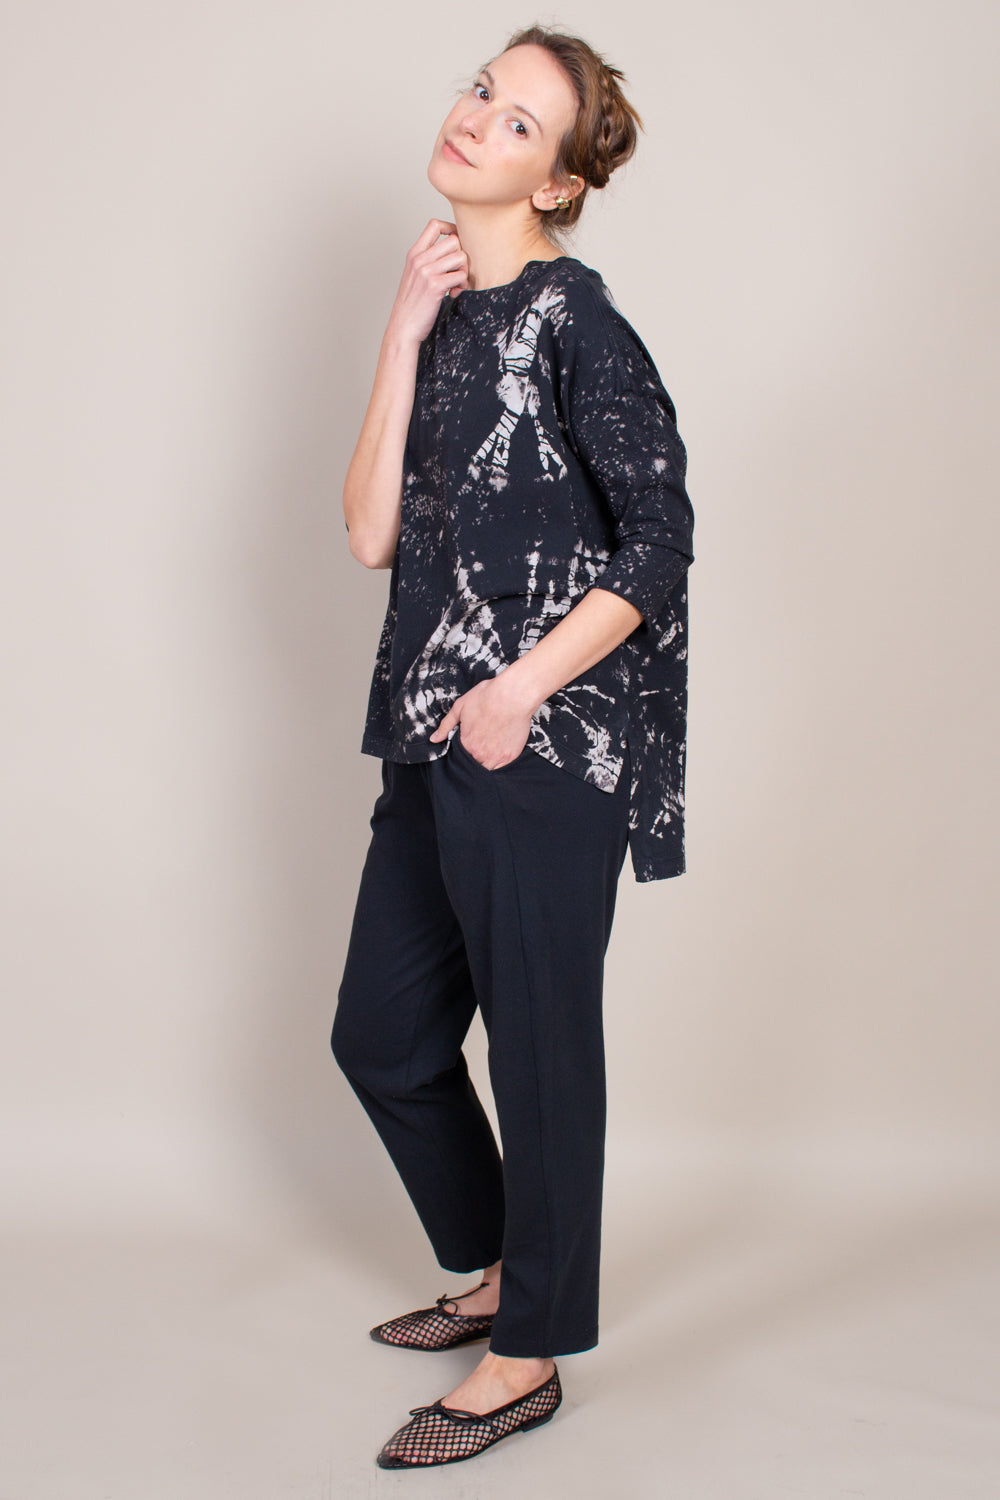 New Cocoon Top in Black Constellation